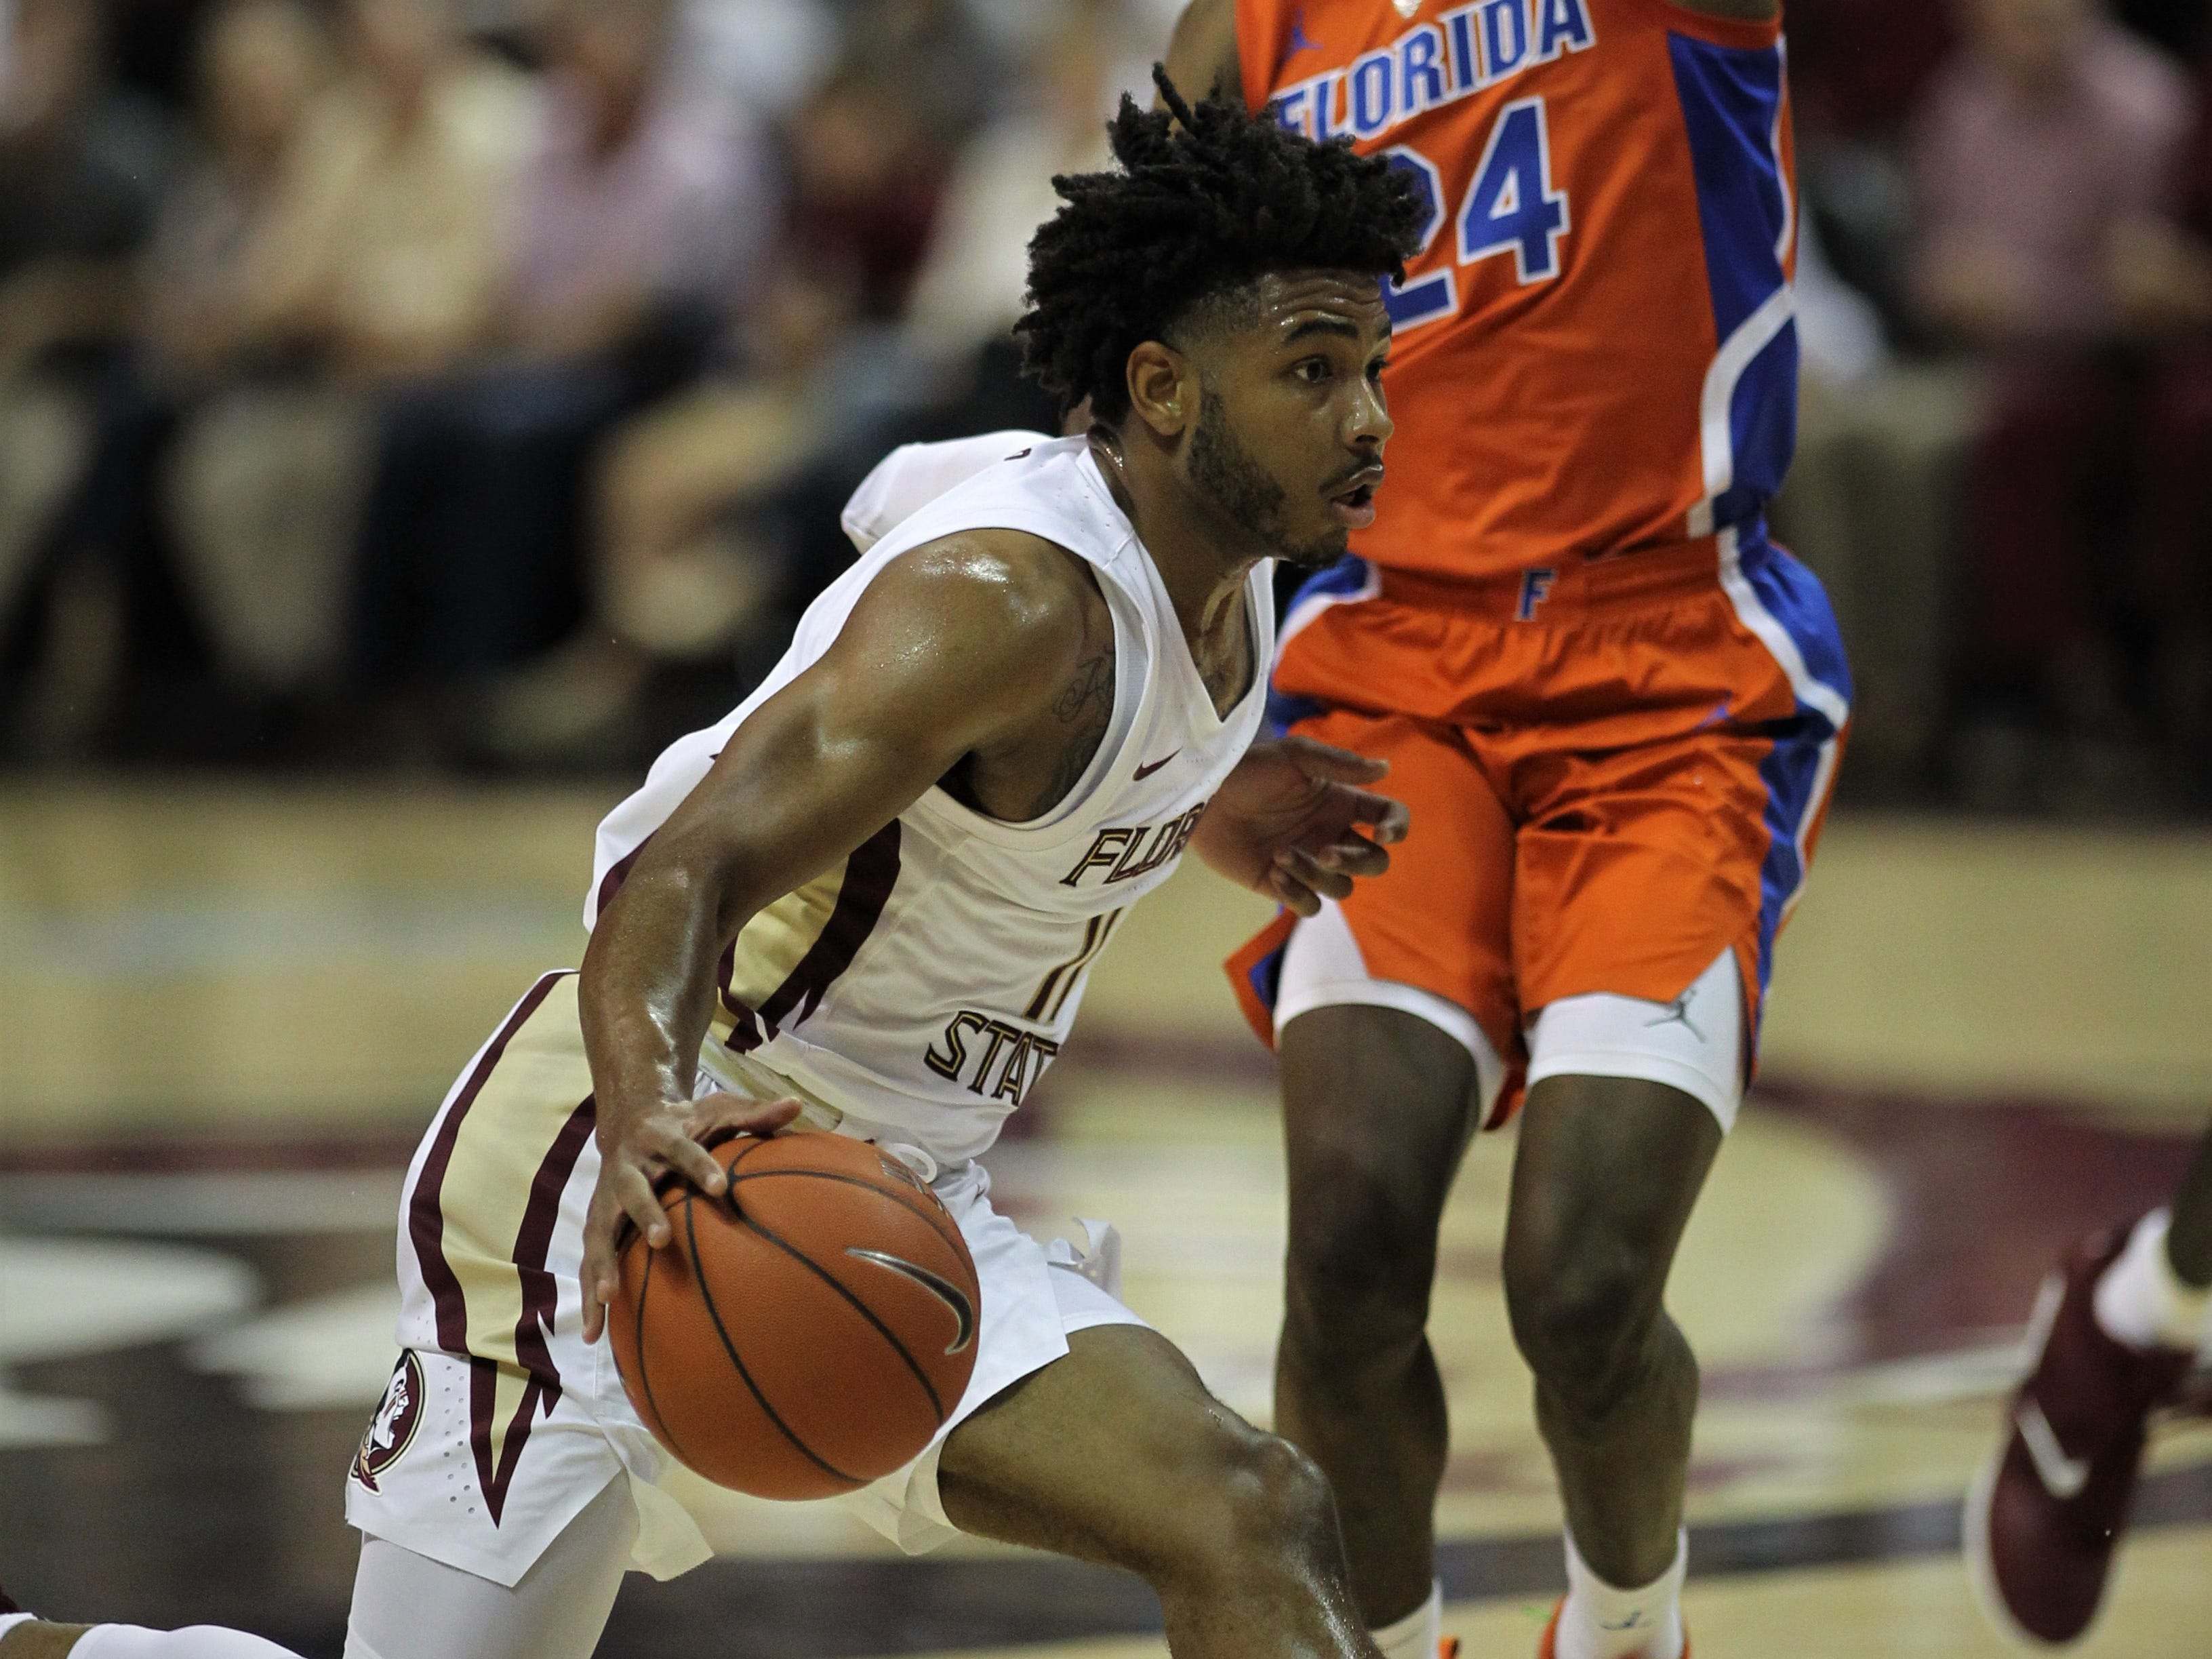 Florida State's David Nichols drives on Florida's Daundrae Ballard during the Sunshine Showdown game Tuesday at the Tucker Civic Center.